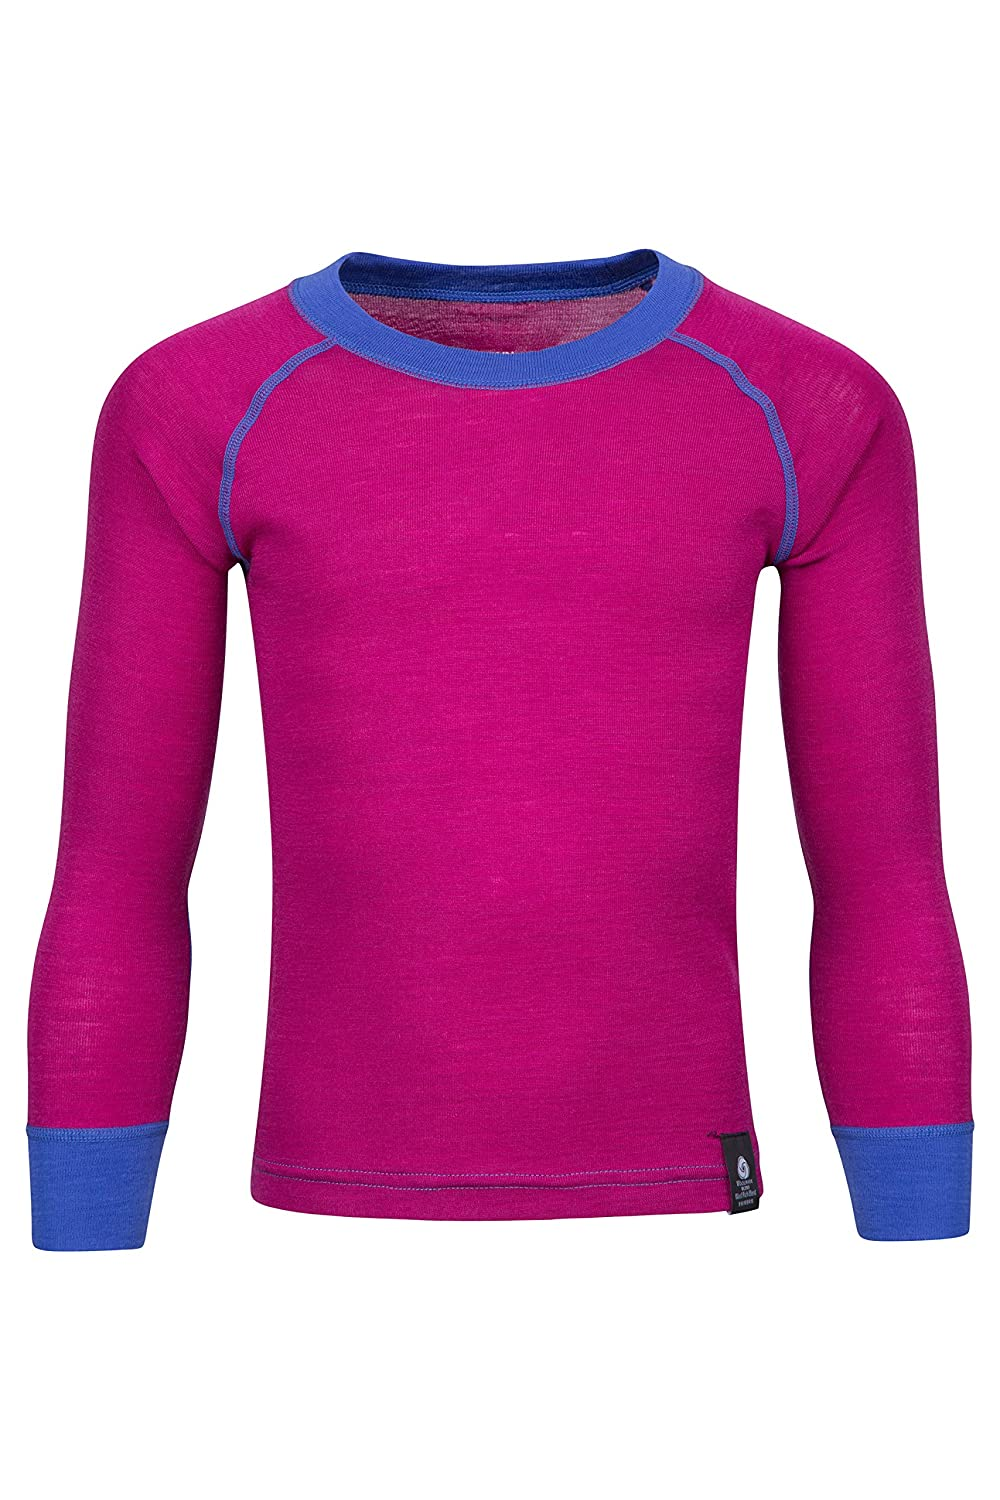 Mountain Warehouse Merino Kids Top -Breathable, Fast Dry Childrens Tee